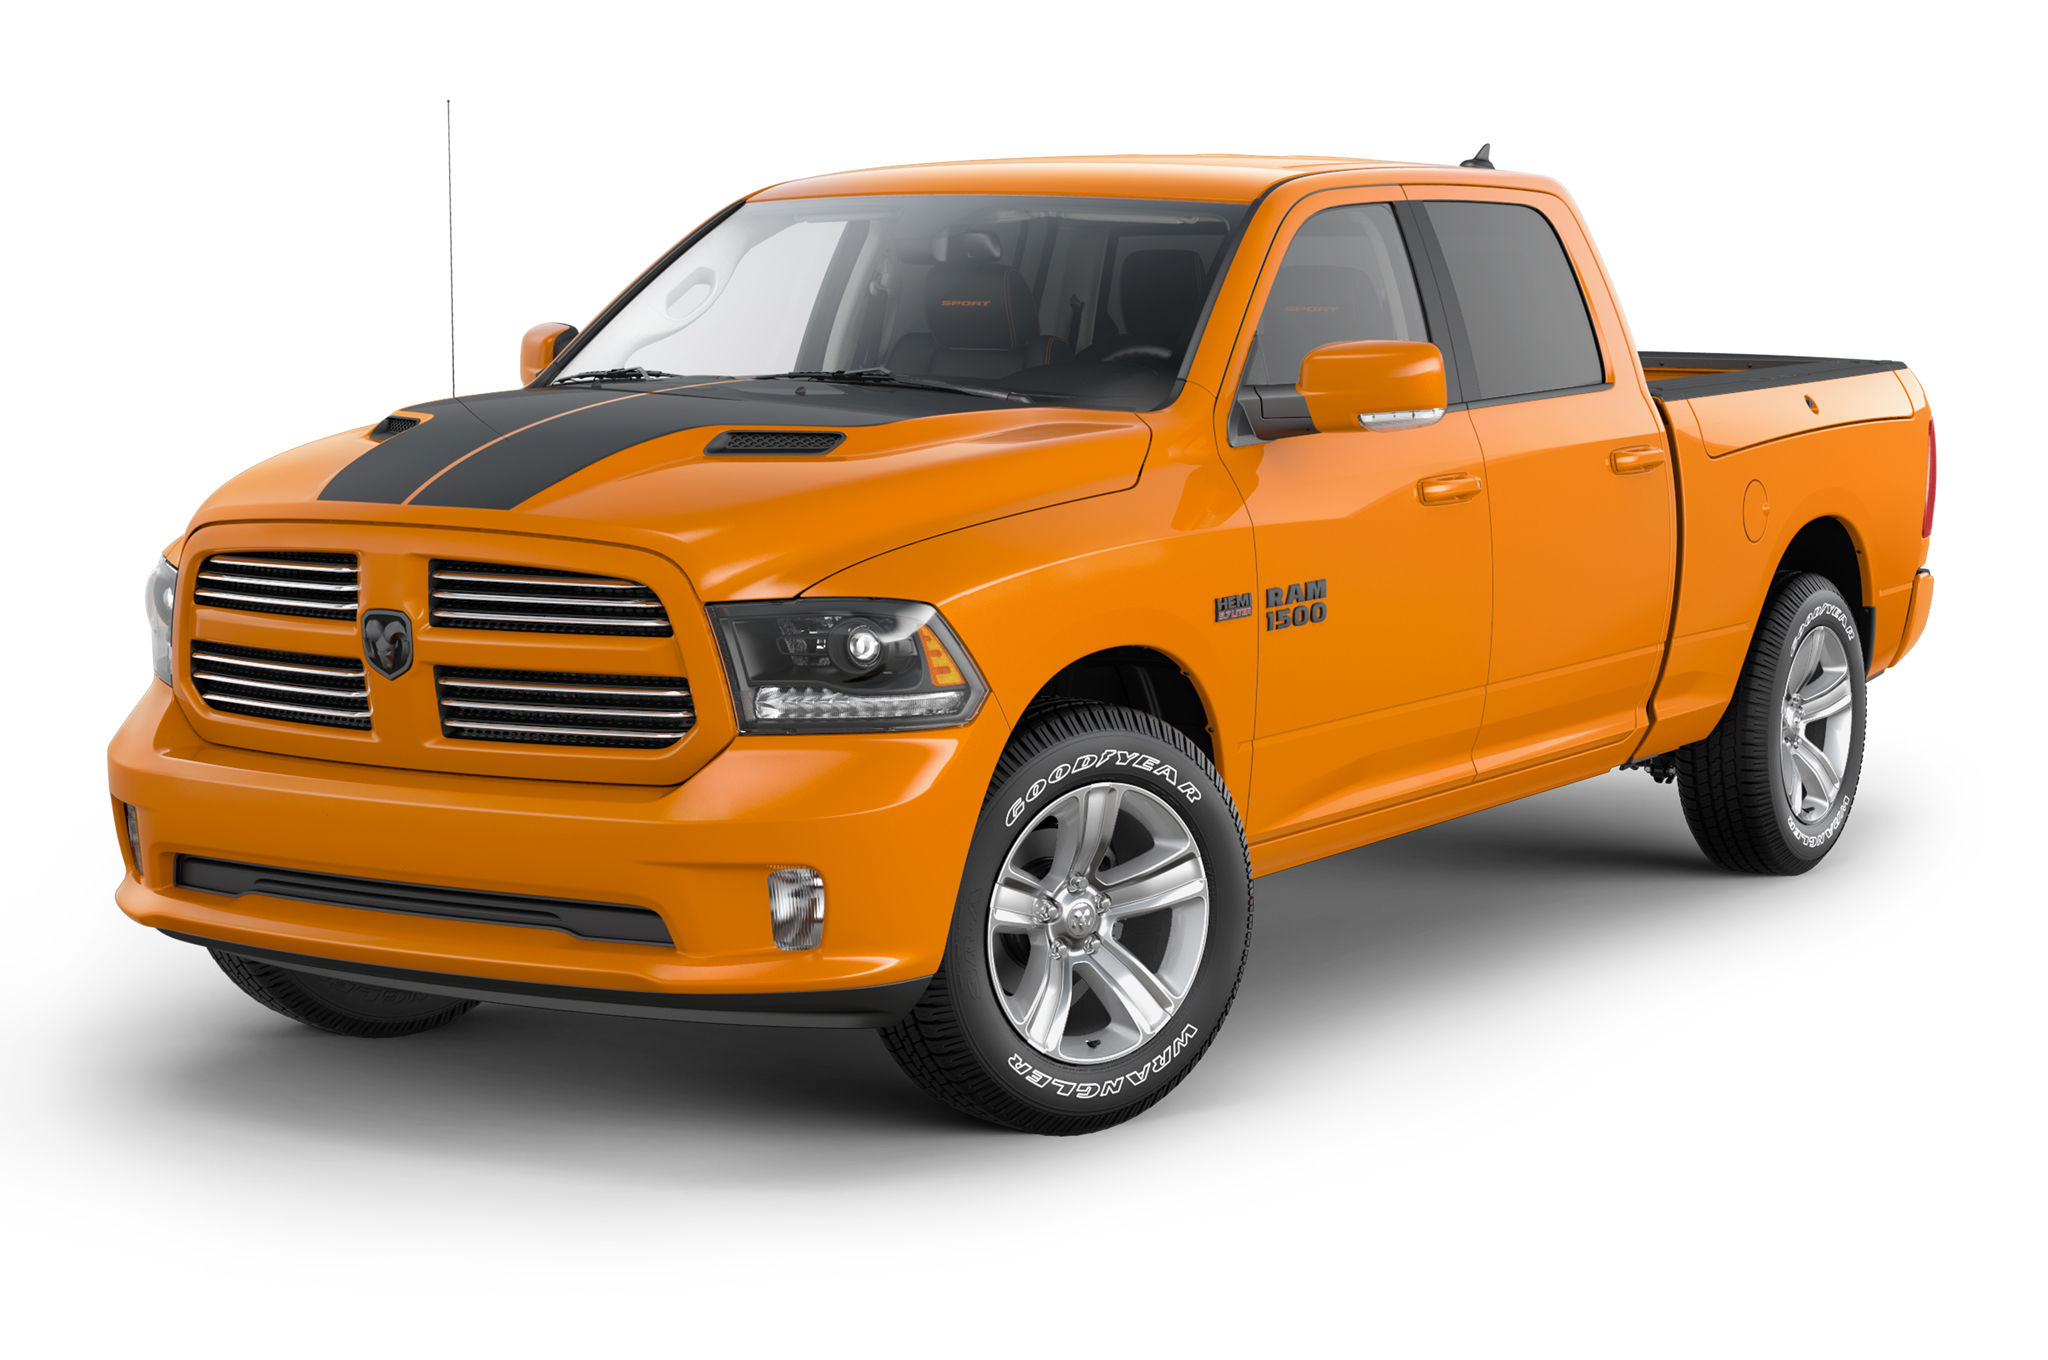 2015 ram 1500 ignition orange sport black sport editions limited to 1 000 units each